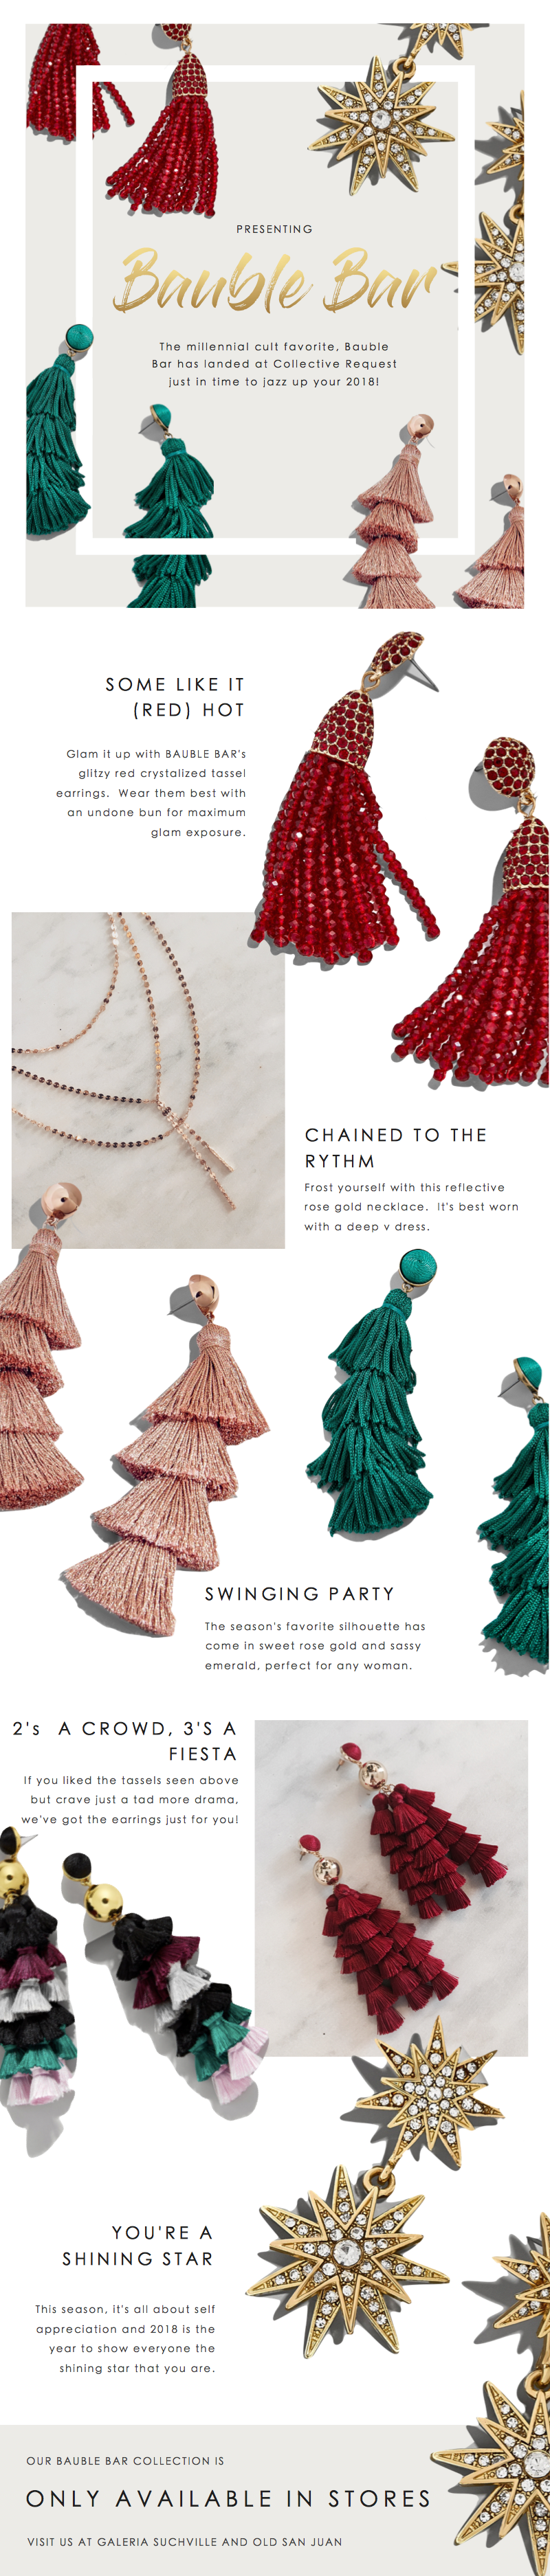 BaubleBar Jewelry- Earrings Tassels